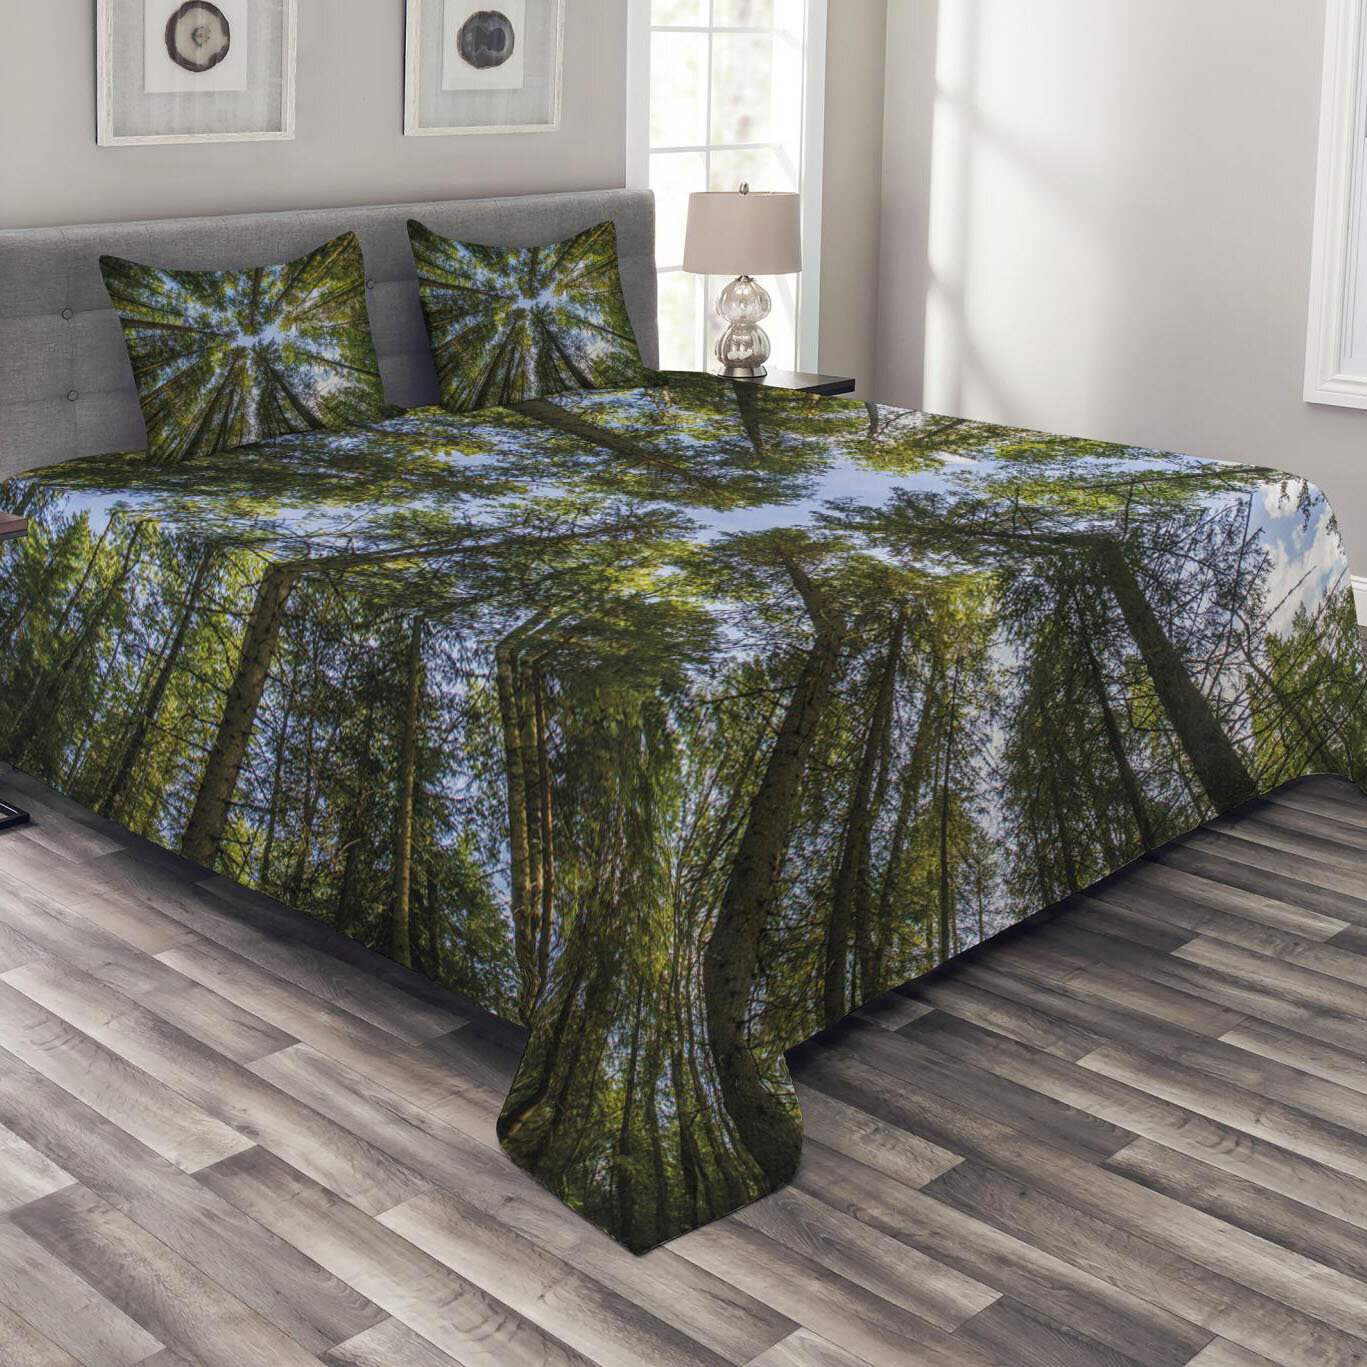 East Urban Home Coverlet Set Wayfair